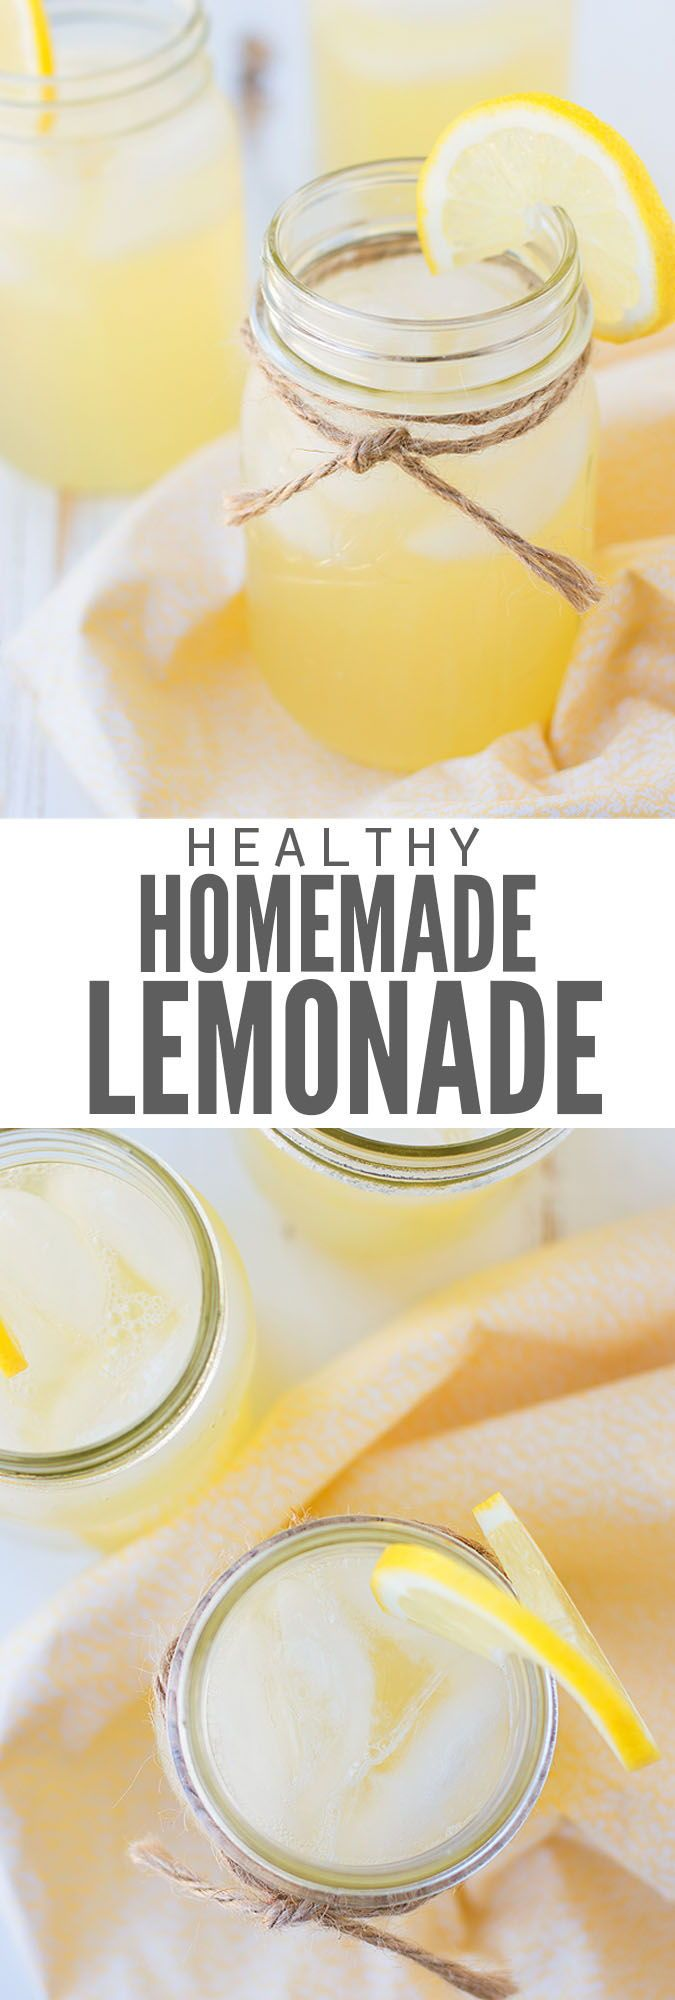 Easy Healthy Homemade Lemonade - Don't Waste the Crumbs